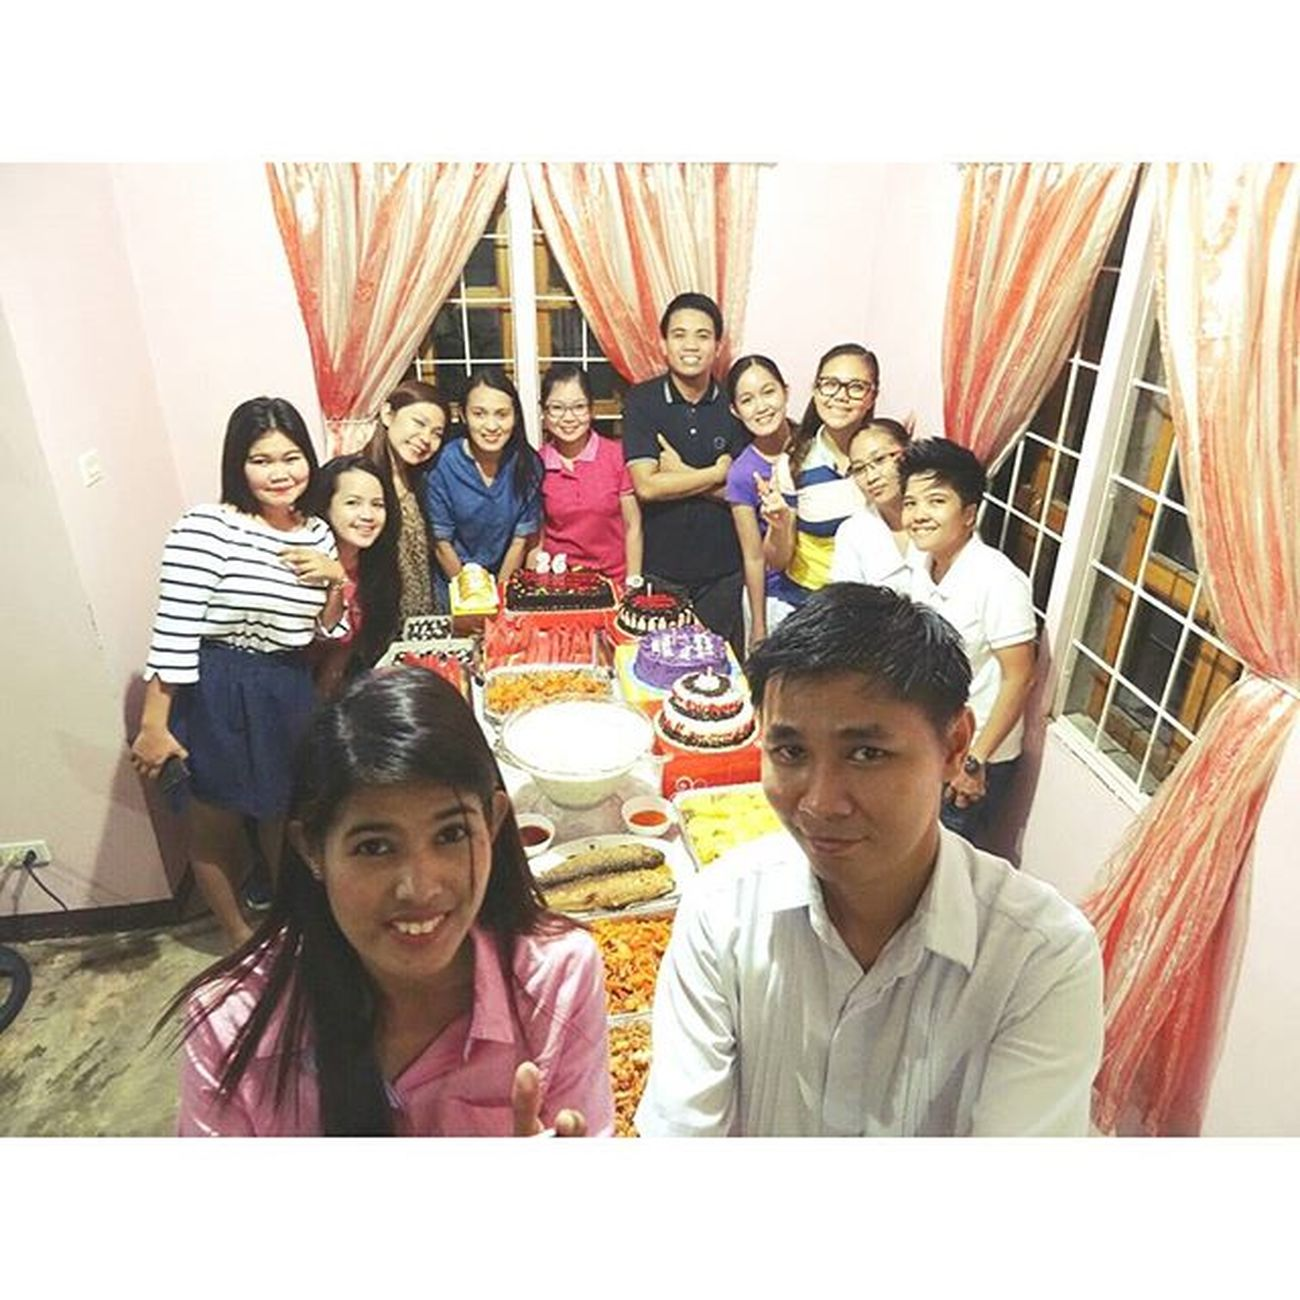 Candles and Cakes, Family and Friends, Food and Drinks, Sing and Cheers. Let's celebrate 😁 👍 👌🎂🍻🍴🎁🎉🎆Junicylicious 26th Birthdaybash Birthdaycake Candlesandcake Blowandmakeawish BirthdayWishes SundetikosTumbalats Junicyscrib 01222016 Gastronomía Happytummies PlainHappiness Foodporn Sonyverse Sony XPERIA ICAN DemandGreat BeMoved Makebelieve